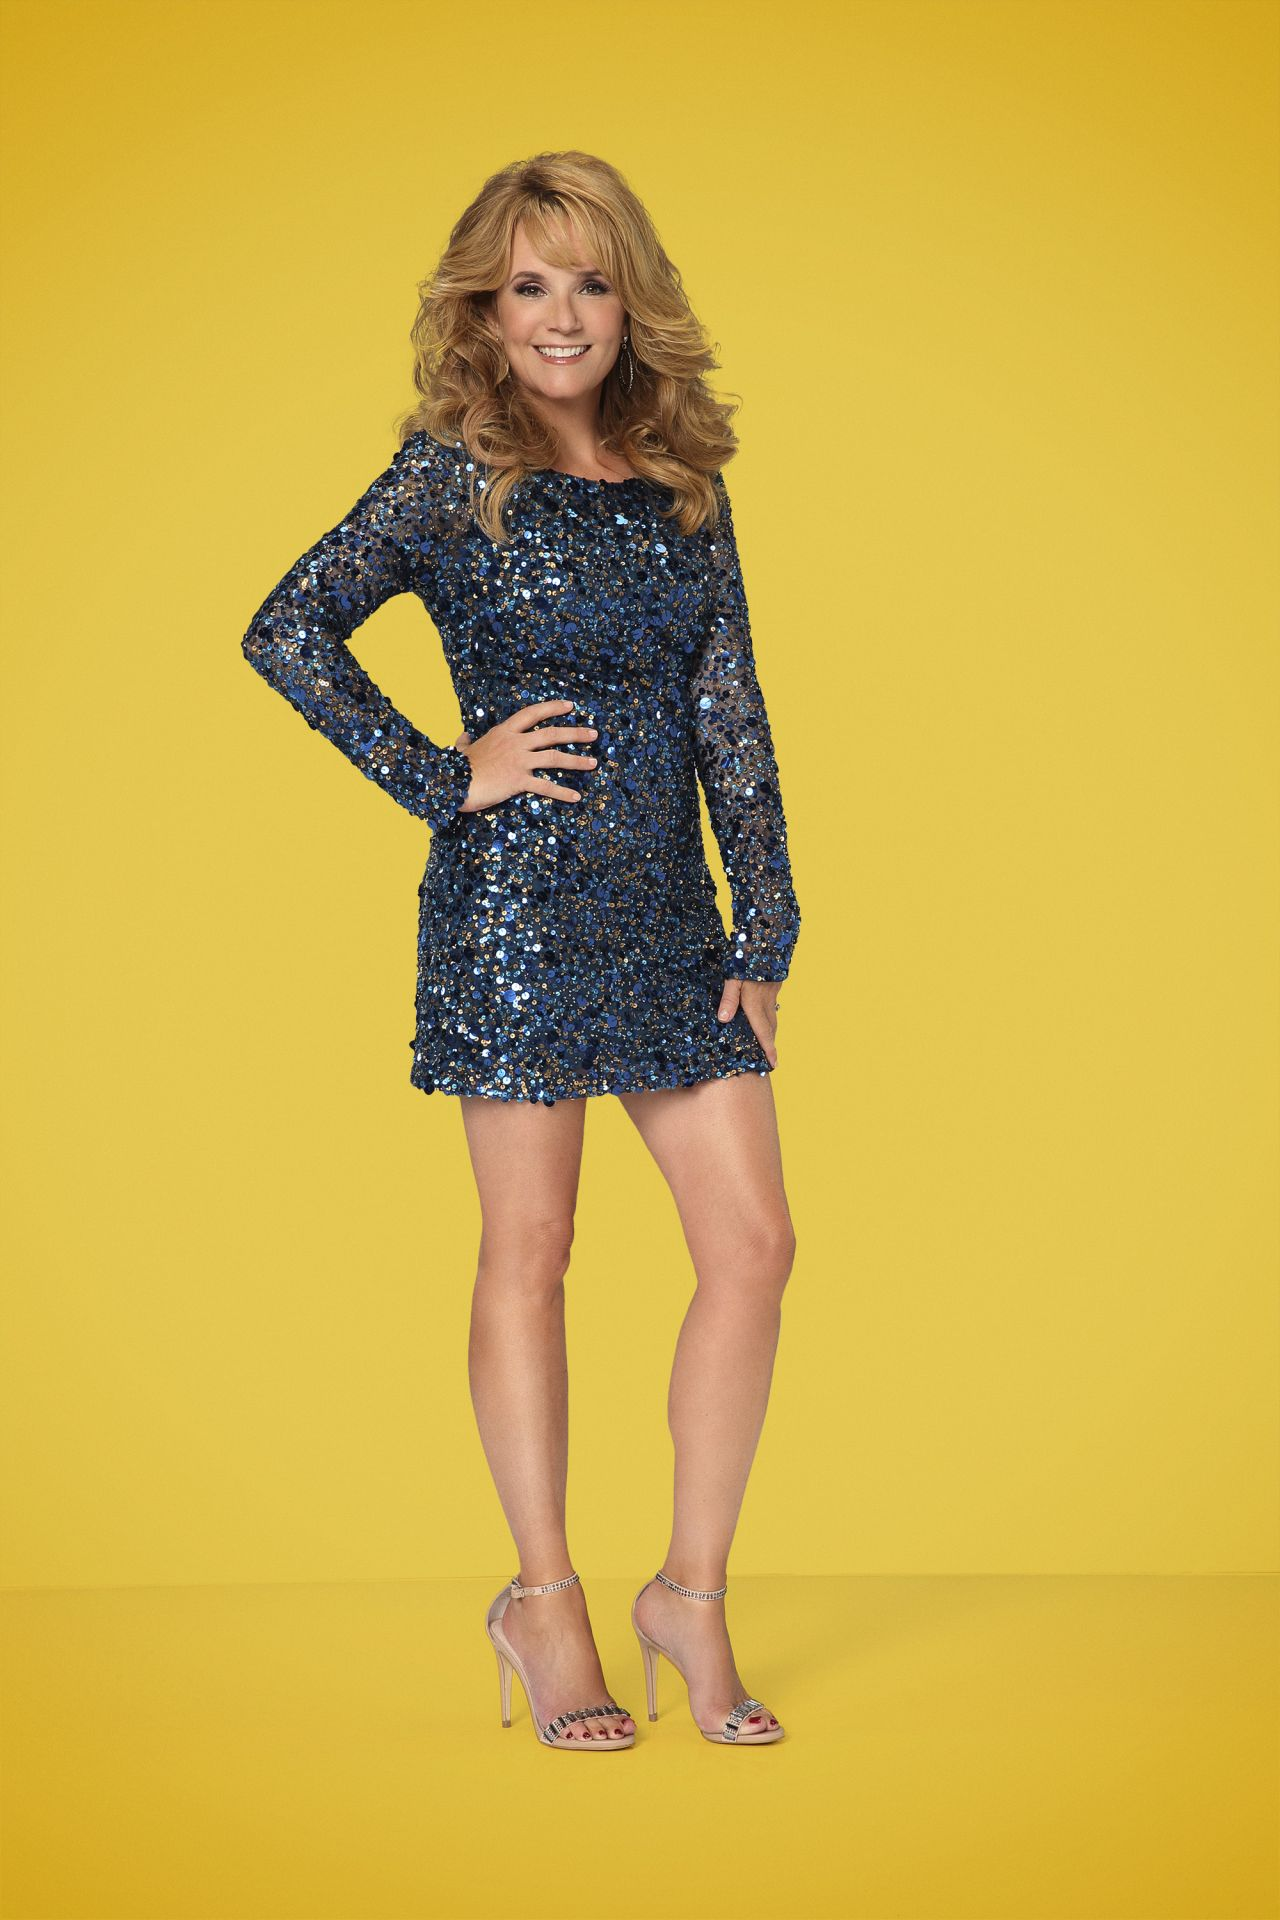 Lea Thompson Promoshoot – Dancing With the Stars Season 19